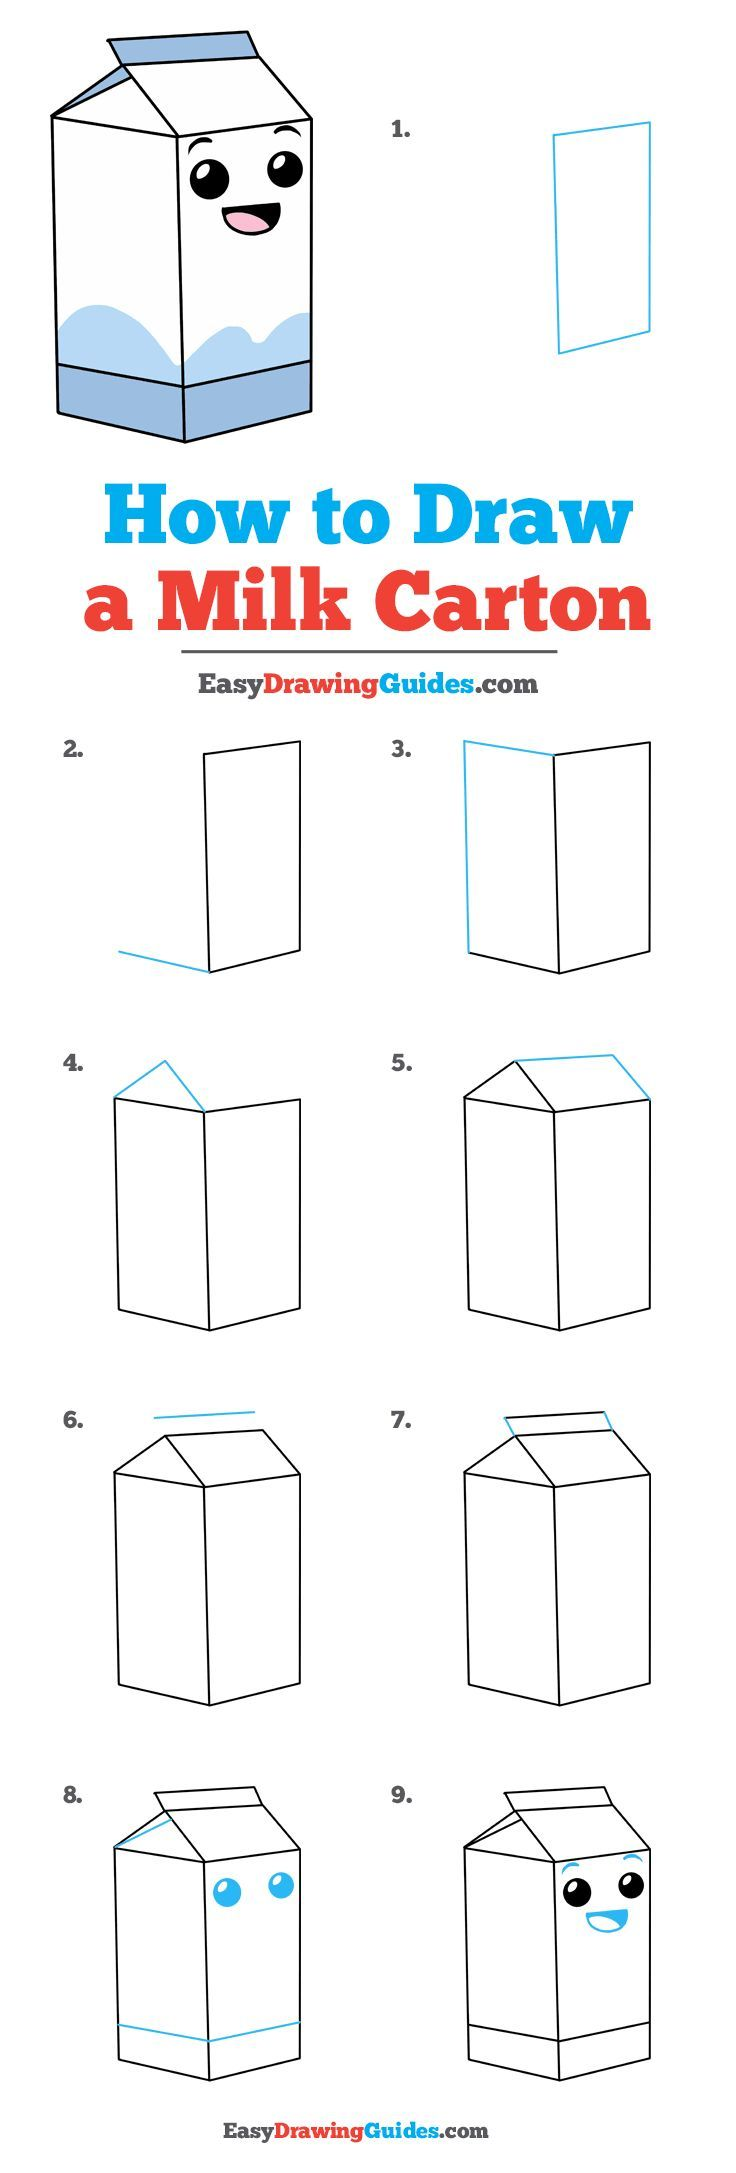 How To Draw A Milk Carton Drawing Tutorial Easy Drawing